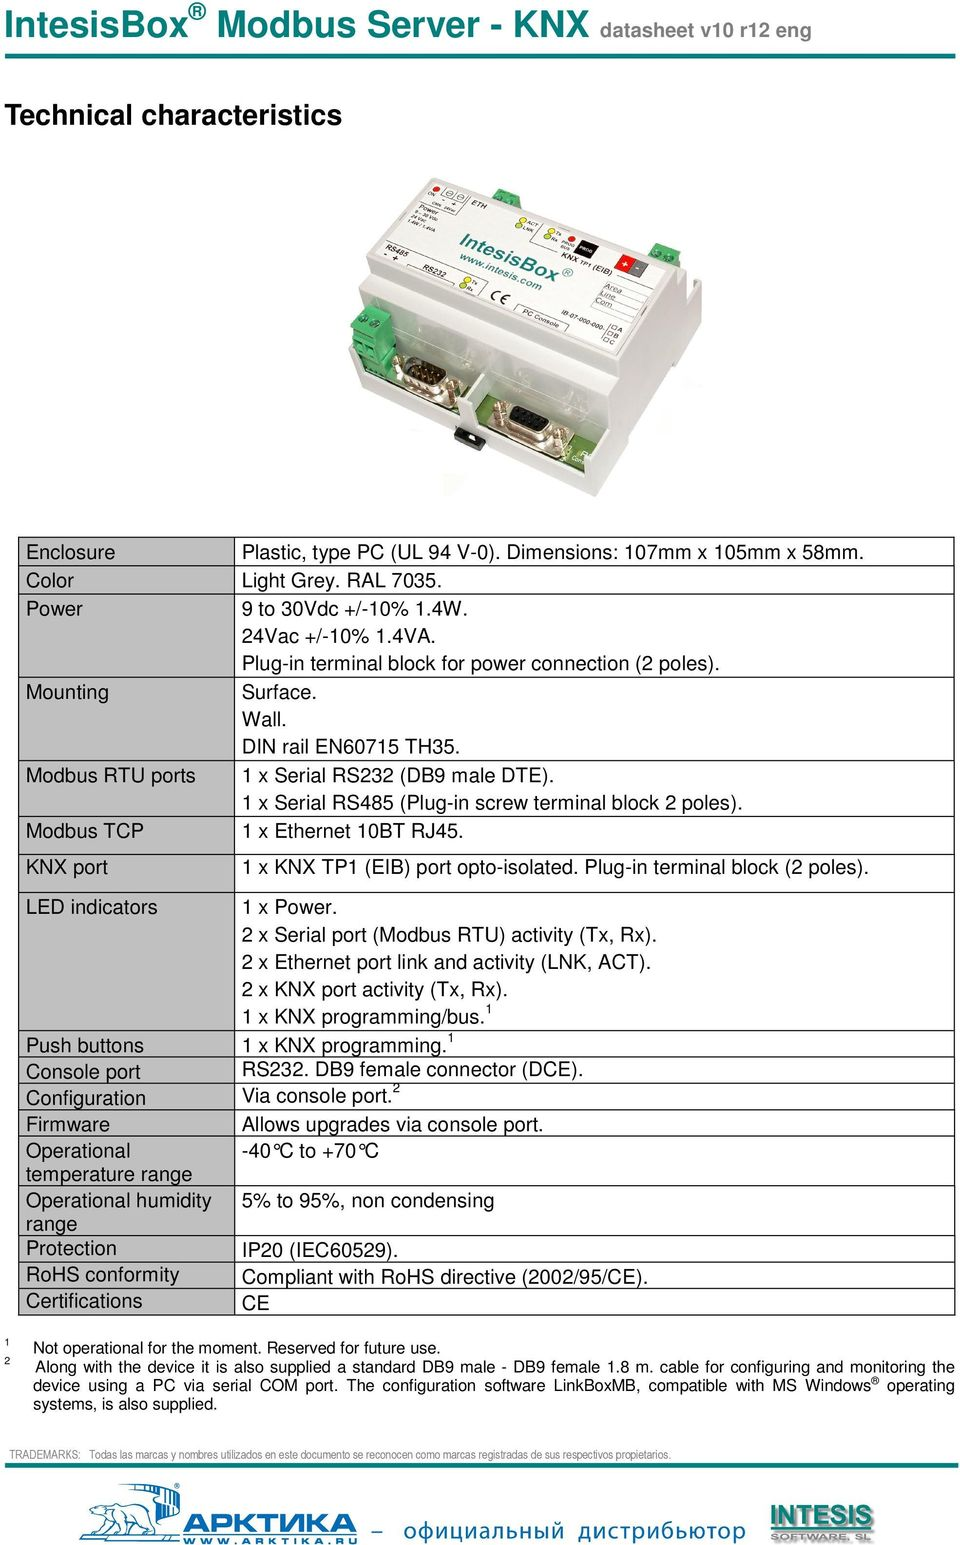 1 x Serial RS485 (Plug-in screw terminal block 2 poles). Modbus TCP 1 x Ethernet 10BT RJ45. KNX port 1 x KNX TP1 (EIB) port opto-isolated. Plug-in terminal block (2 poles). LED indicators 1 x Power.